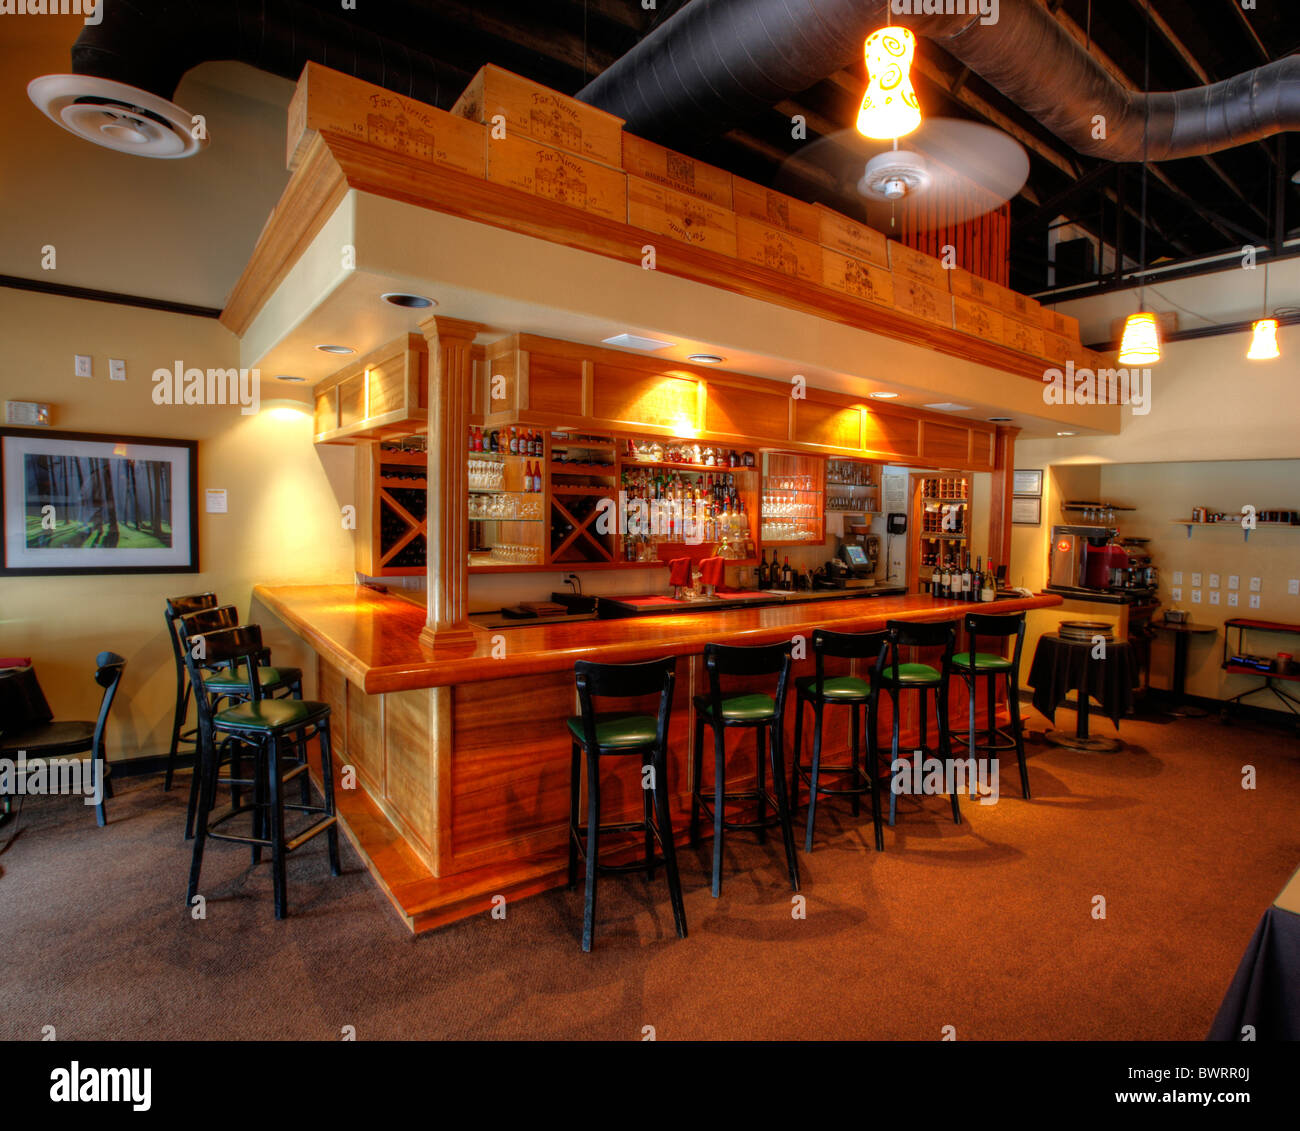 Bar in an upscale restaurant in the USA. - Stock Image